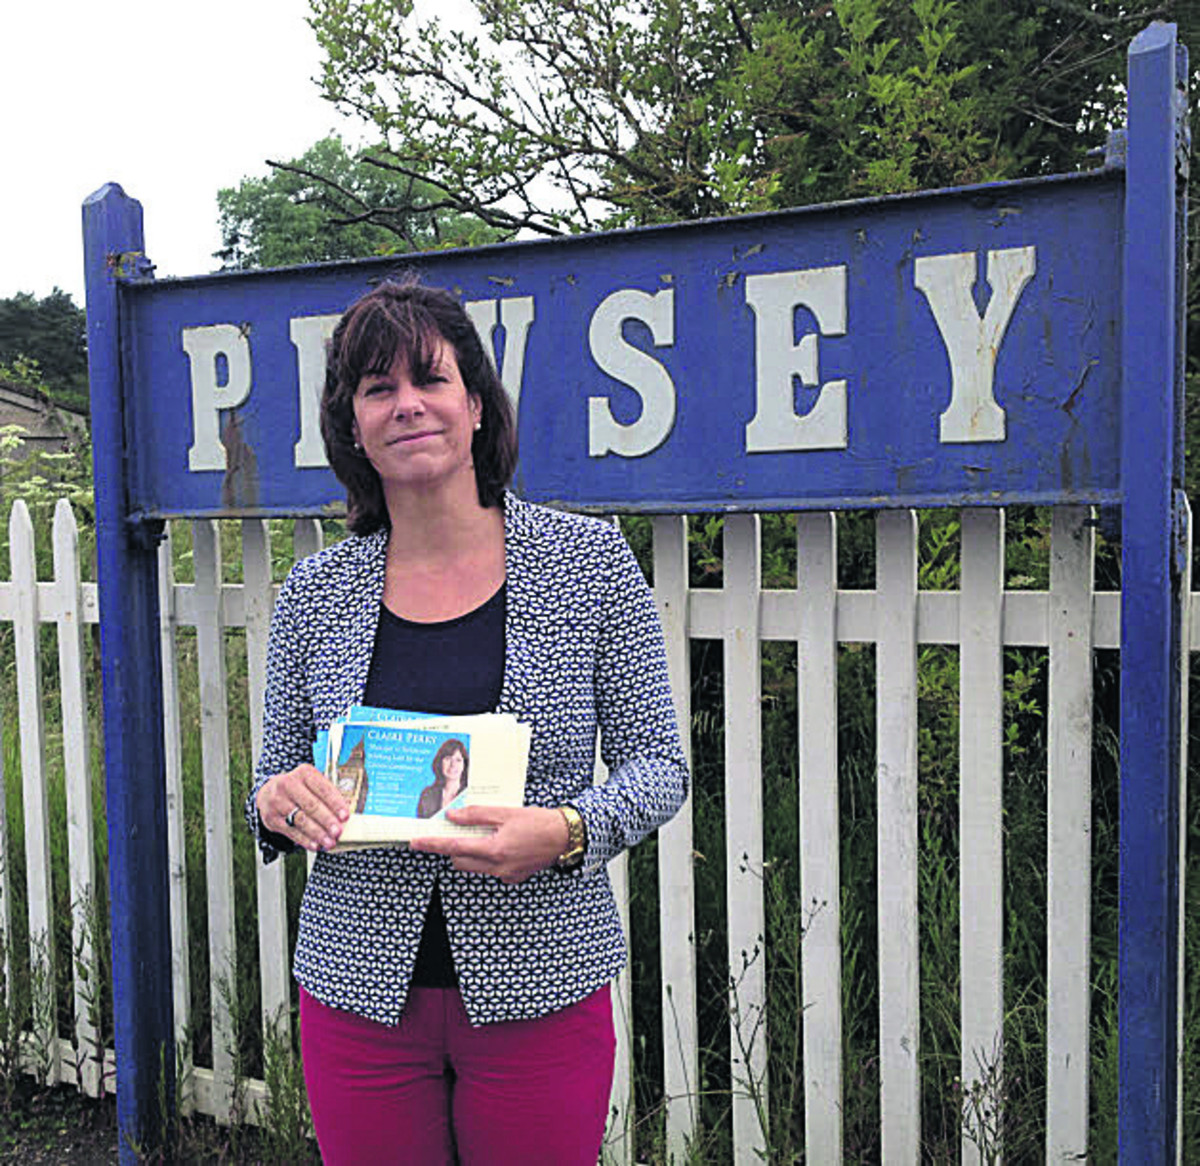 Claire Perry at Pewsey station where she urged commuters to lobby for direct services to Paddington